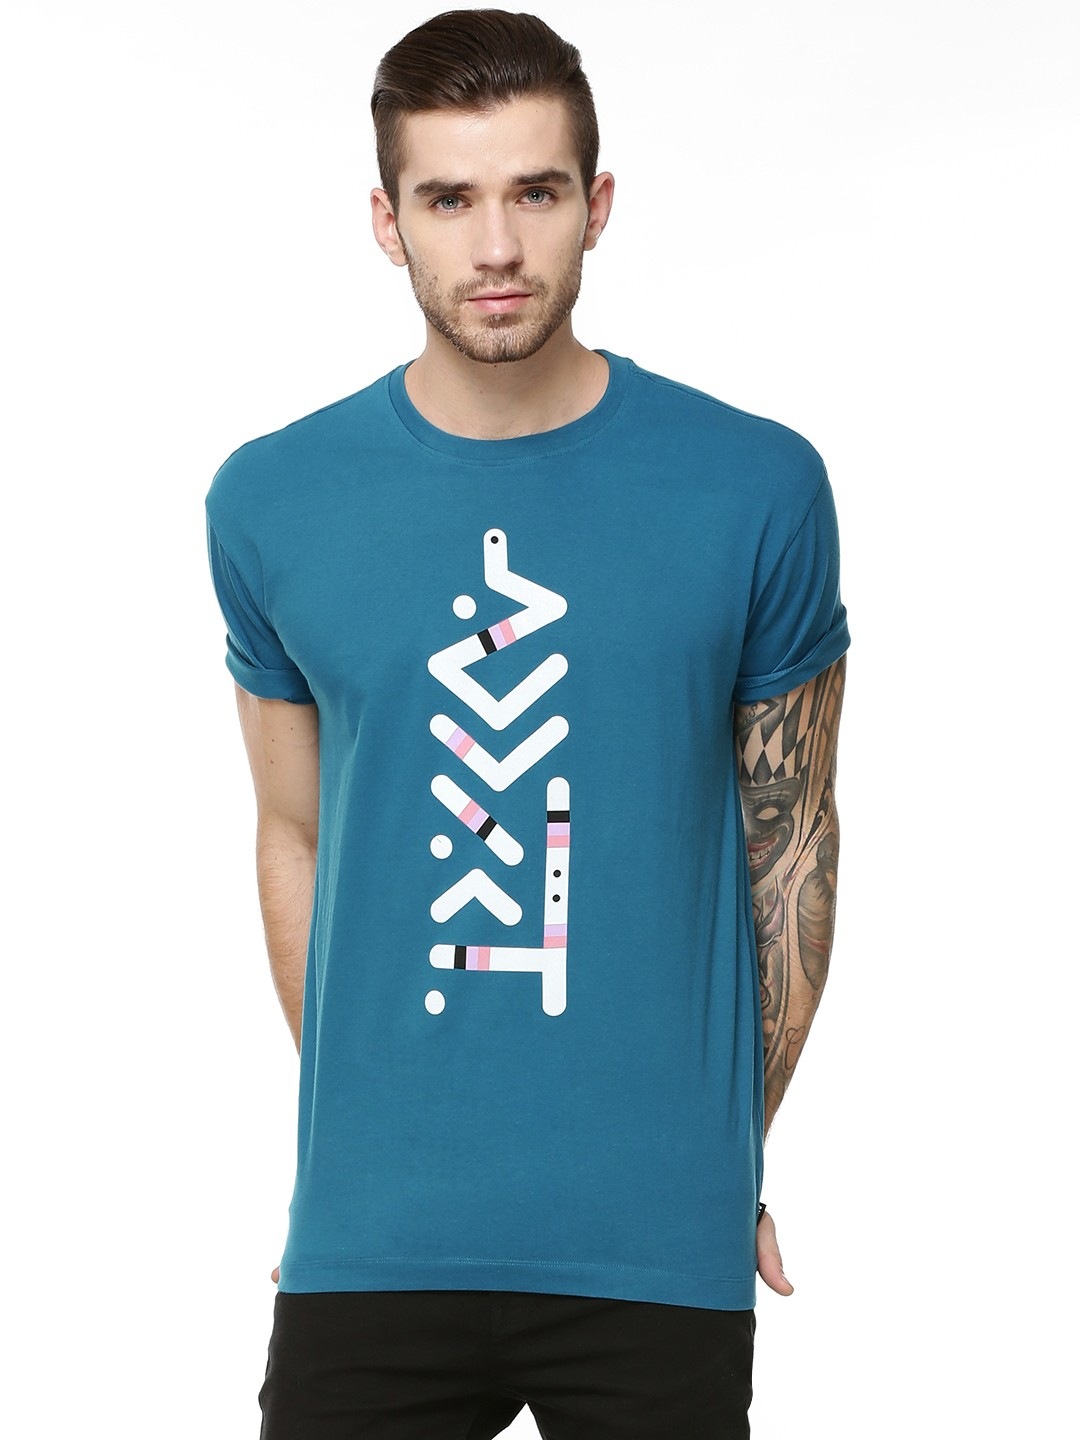 buy addict message t shirt for men men 39 s blue t shirts online in india. Black Bedroom Furniture Sets. Home Design Ideas